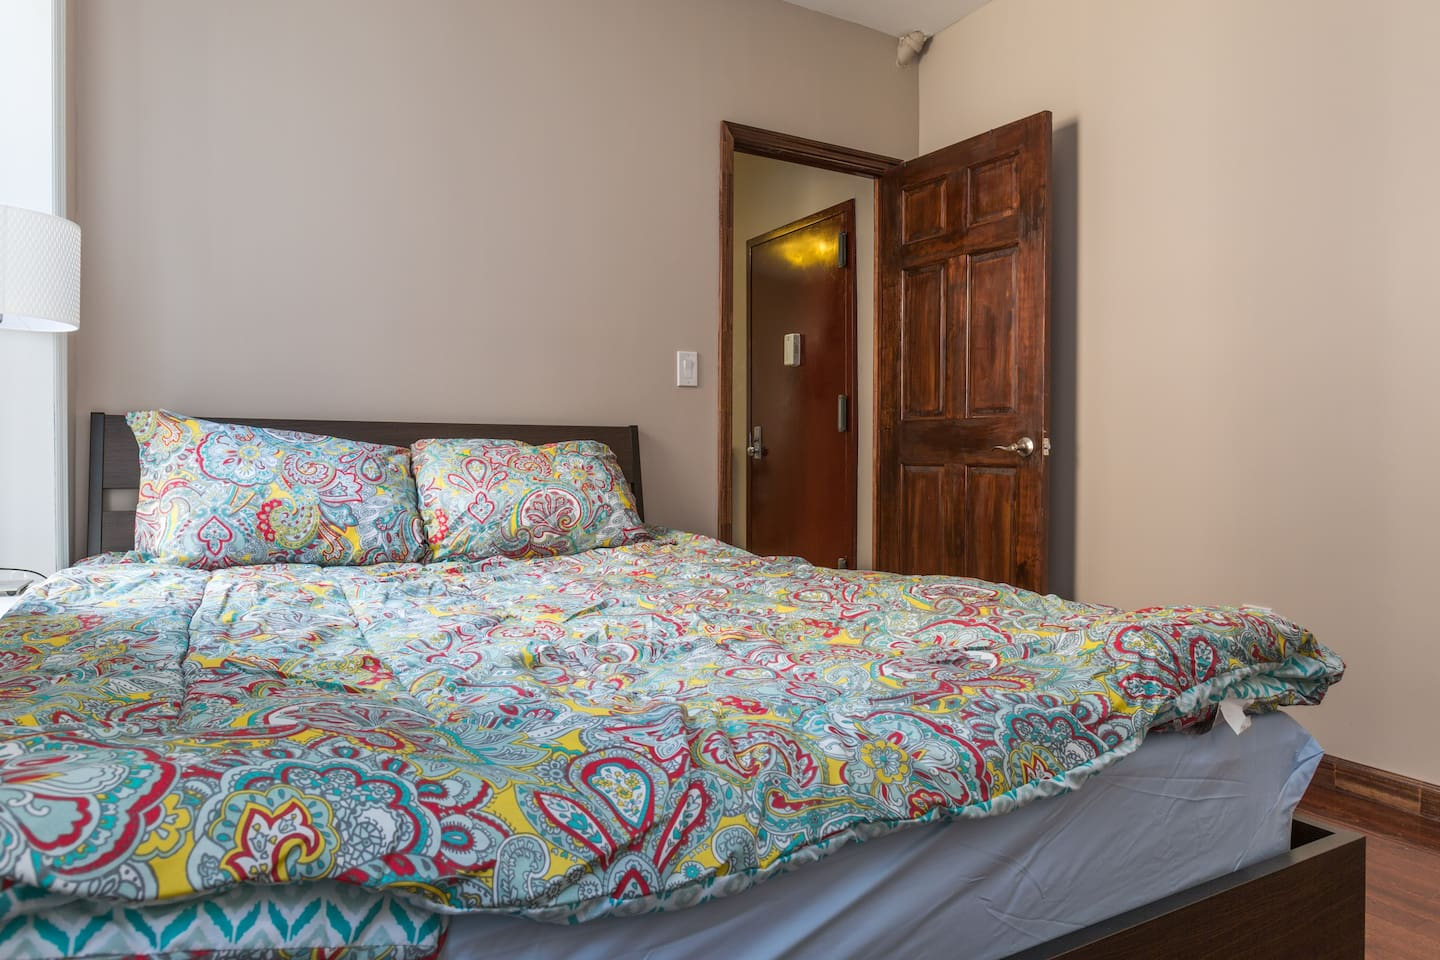 Huge queen sized bed! Brand New! In fact, the whole apt is newly renovated w/ new furniture!